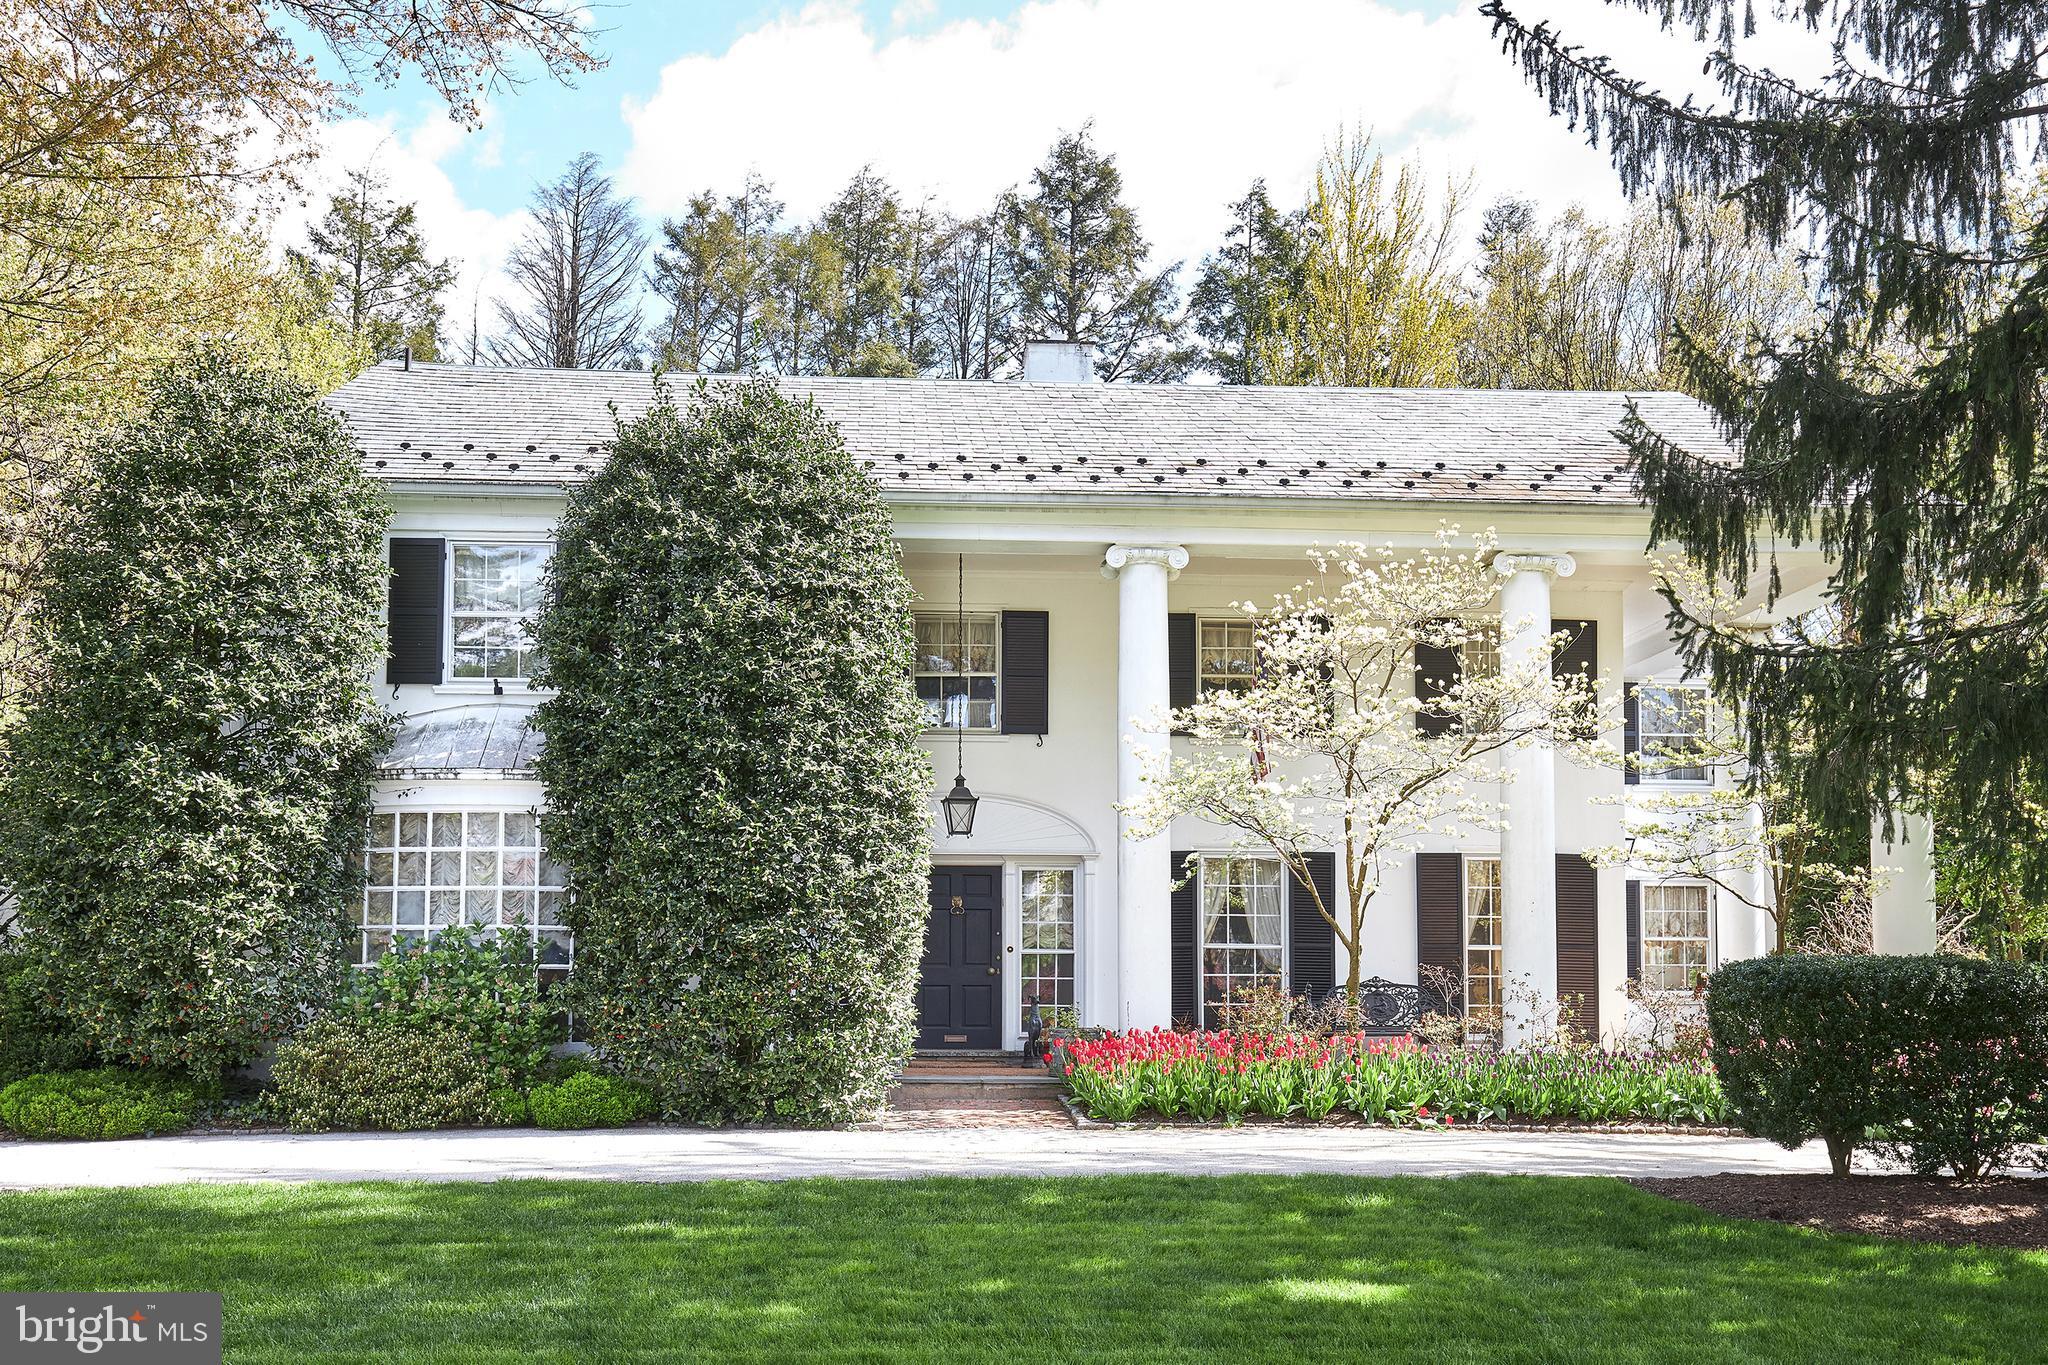 Early 2022 settlement preferred.  Perfectly set on a breathtaking 1.3 acre flat lot on one of Wynnewood s most coveted tree lined streets, this stunning estate awaits its next stewards, after being exquisitely renovated, expanded and improved by the same family for over 50 years. Originally designed by famed society decorator Dorothy Draper, this glamorous home offers spaces that cater to a fabulous, everyday family lifestyle as well as providing for effortless entertaining. Every detail and design element have been impeccably executed and highlights include a dramatic front to back black and white marble entrance foyer with padded and upholstered Scalamandre damask walls, gracious sun-filled Living and Dining Rooms with 9  ceilings and carved crown moldings, two separate beautifully appointed home offices with custom built-ins and bookcases, fully mirrored formal powder room replicating Coco Chanel s Paris apartment, breathtaking Family Room addition with floor to ceiling windows and French doors overlooking the private grounds, classic white Kitchen, Breakfast Room and additional sitting room which could easily accommodate a large eat-in Gourmet Kitchen, luxurious Master Bedroom Suite with his and hers baths and Dressing Rooms with extensive custom-crafted built-ins, two additional Bedrooms on the second floor, one of which is now used as a stunning office with walnut book cases and crown moldings, and a bright, private third floor bedroom suite with classic white-tiled bathroom. Mature landscaped grounds with stunning pool, pool house and existing footprint of a har-tru tennis court with rare outdoor lighting and a putting green complete this all inclusive property. This timeless treasure offers a serene setting while being within walking distance to trains, dining, shopping, renowned hospitals houses of worship, and just minutes away from the finest schools, universities, Center City Philadelphia, Philadelphia International Airport and 95 minutes to New York Cit